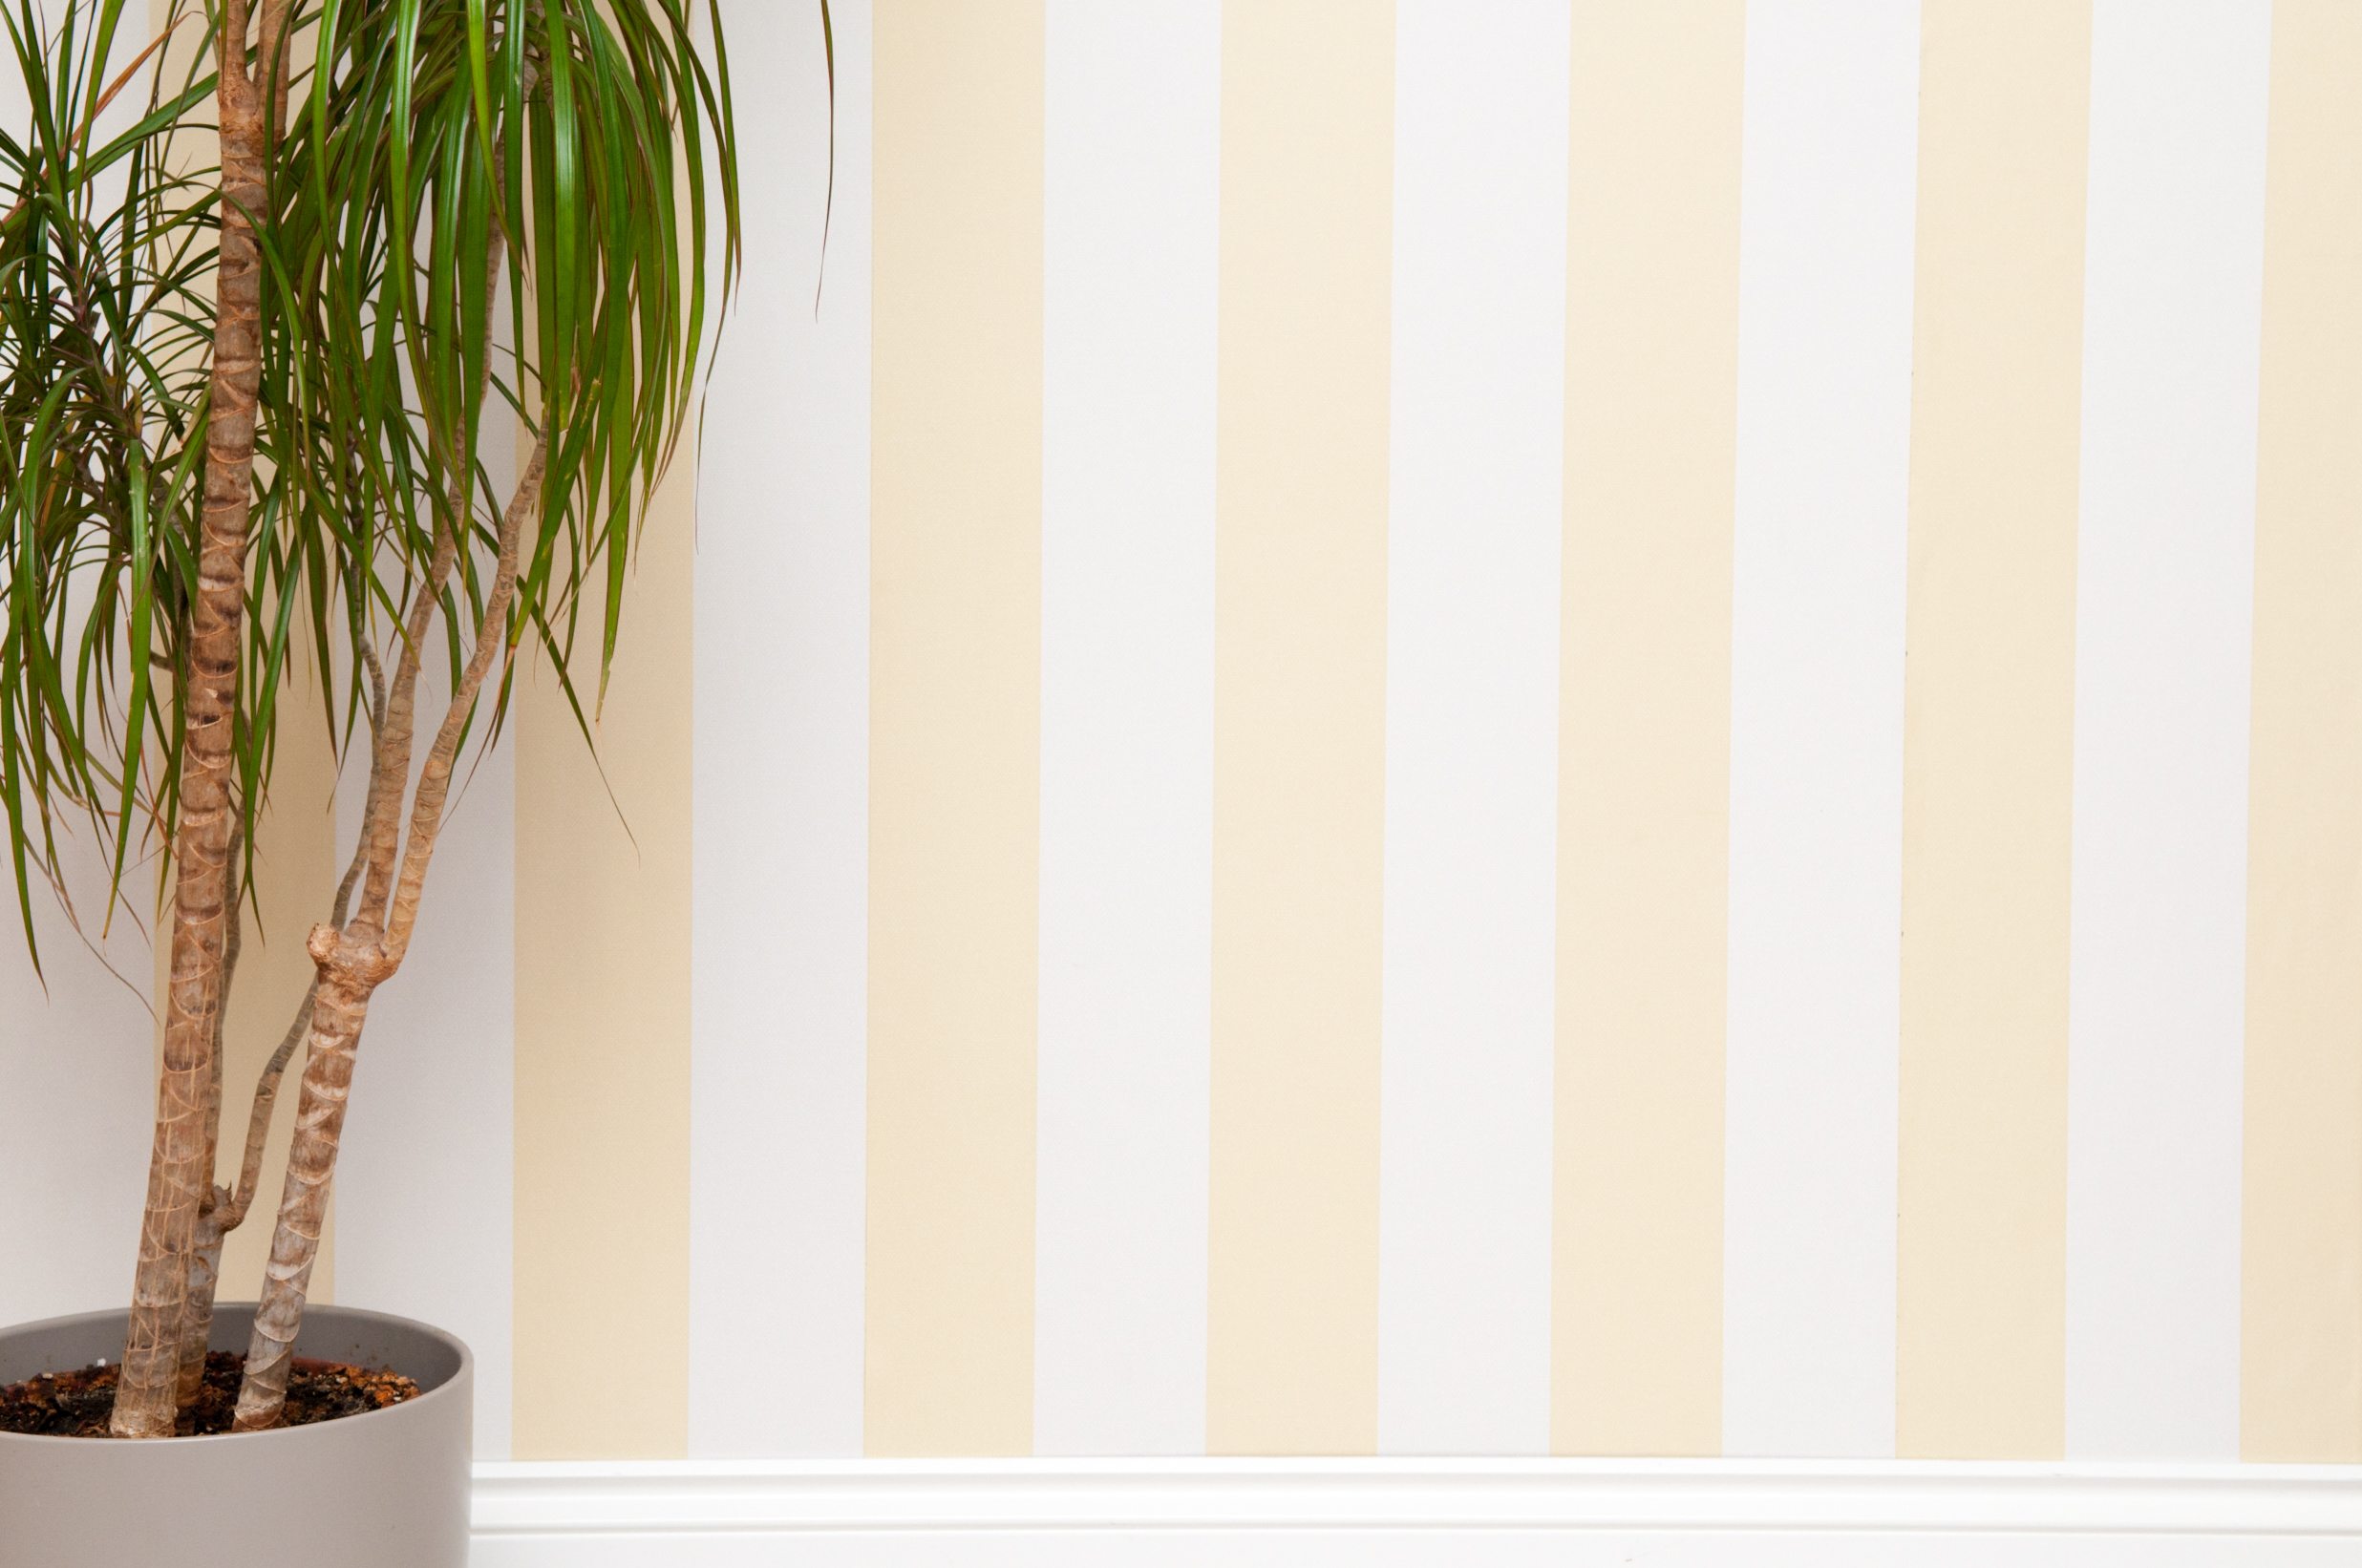 Empty room background with striped yellow wallpaper a wooden floor and a plant